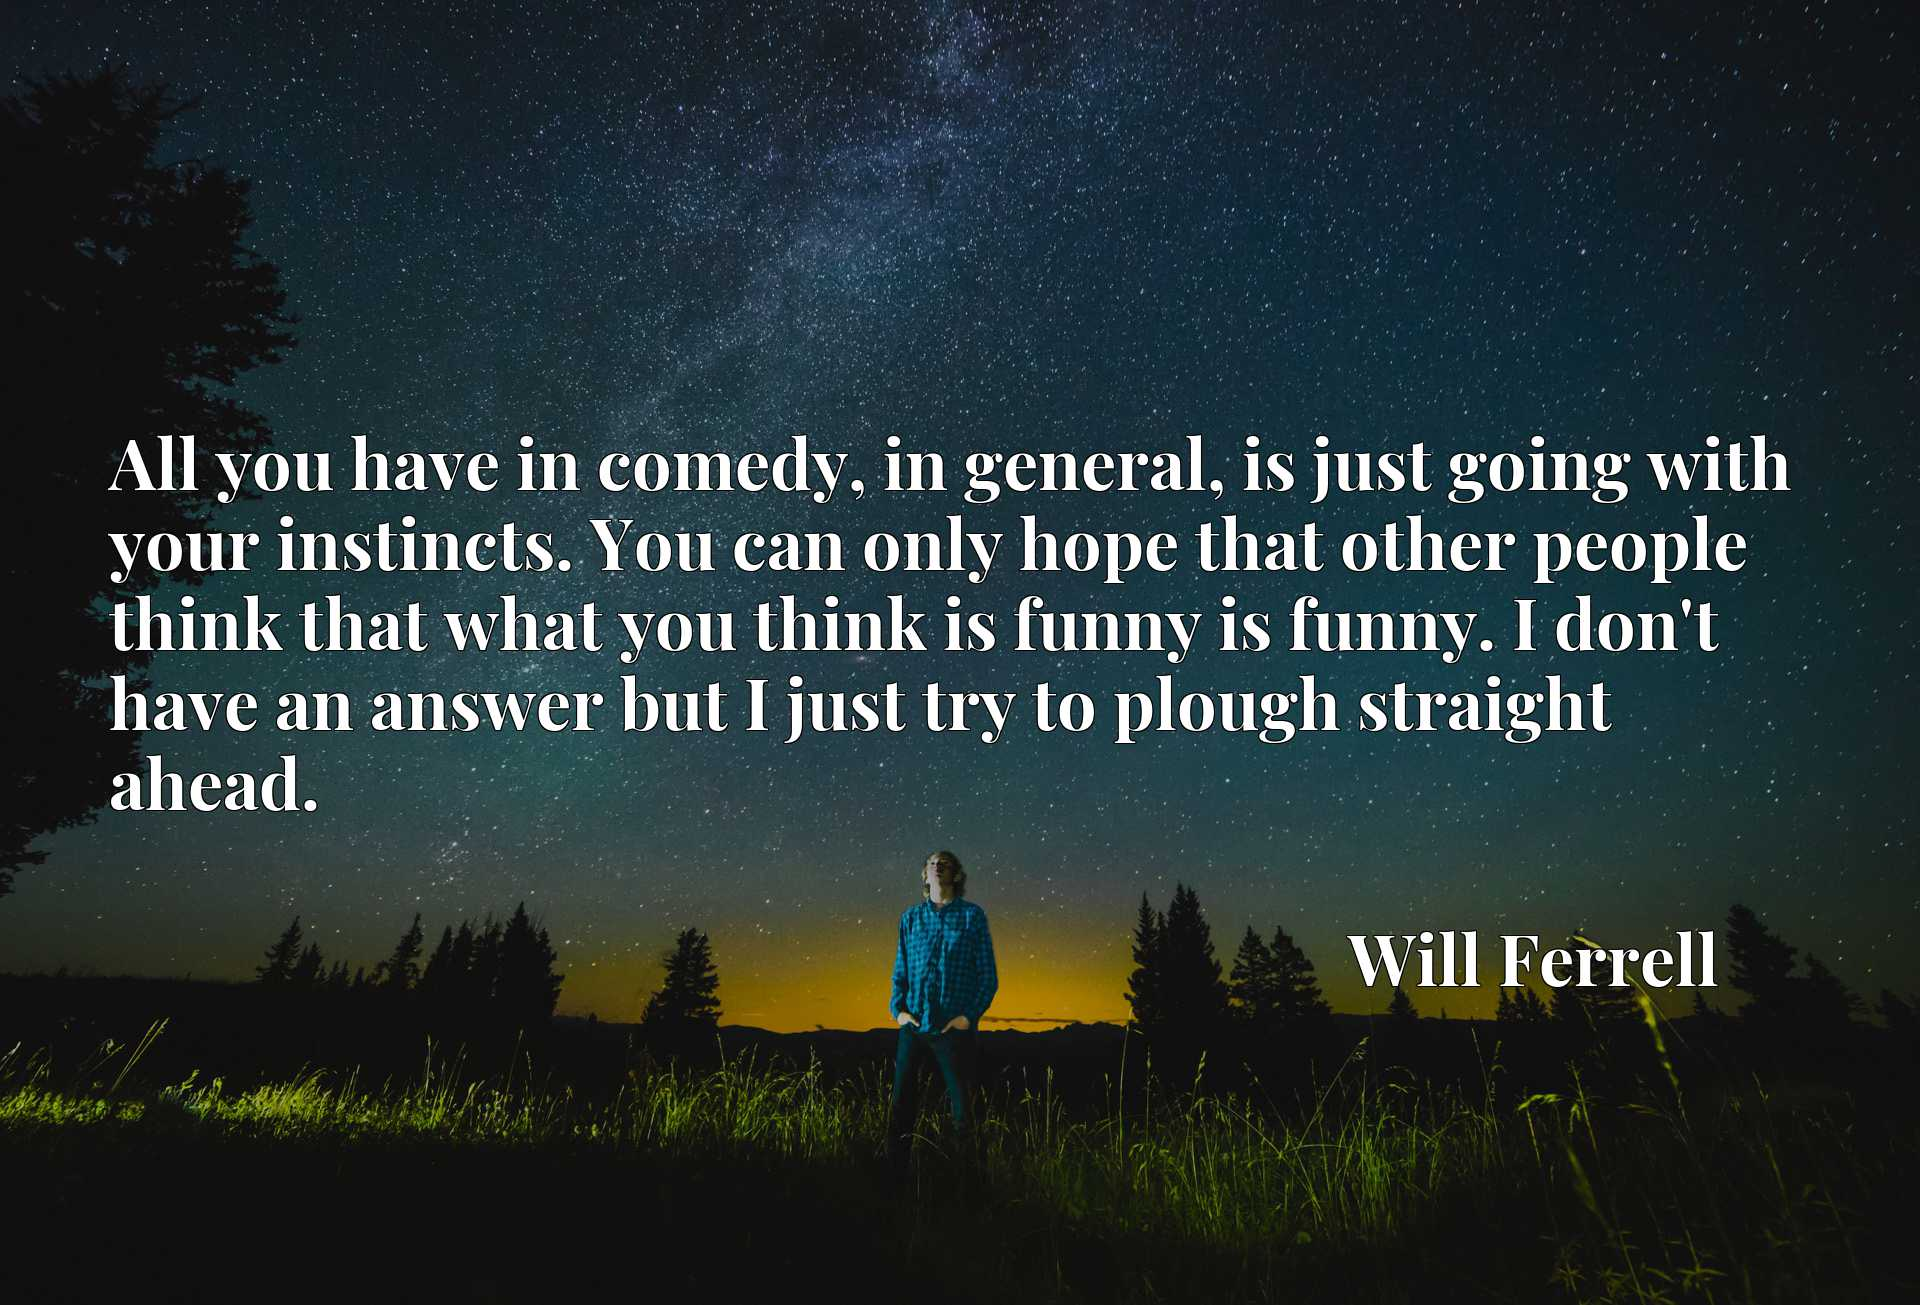 All you have in comedy, in general, is just going with your instincts. You can only hope that other people think that what you think is funny is funny. I don't have an answer but I just try to plough straight ahead.